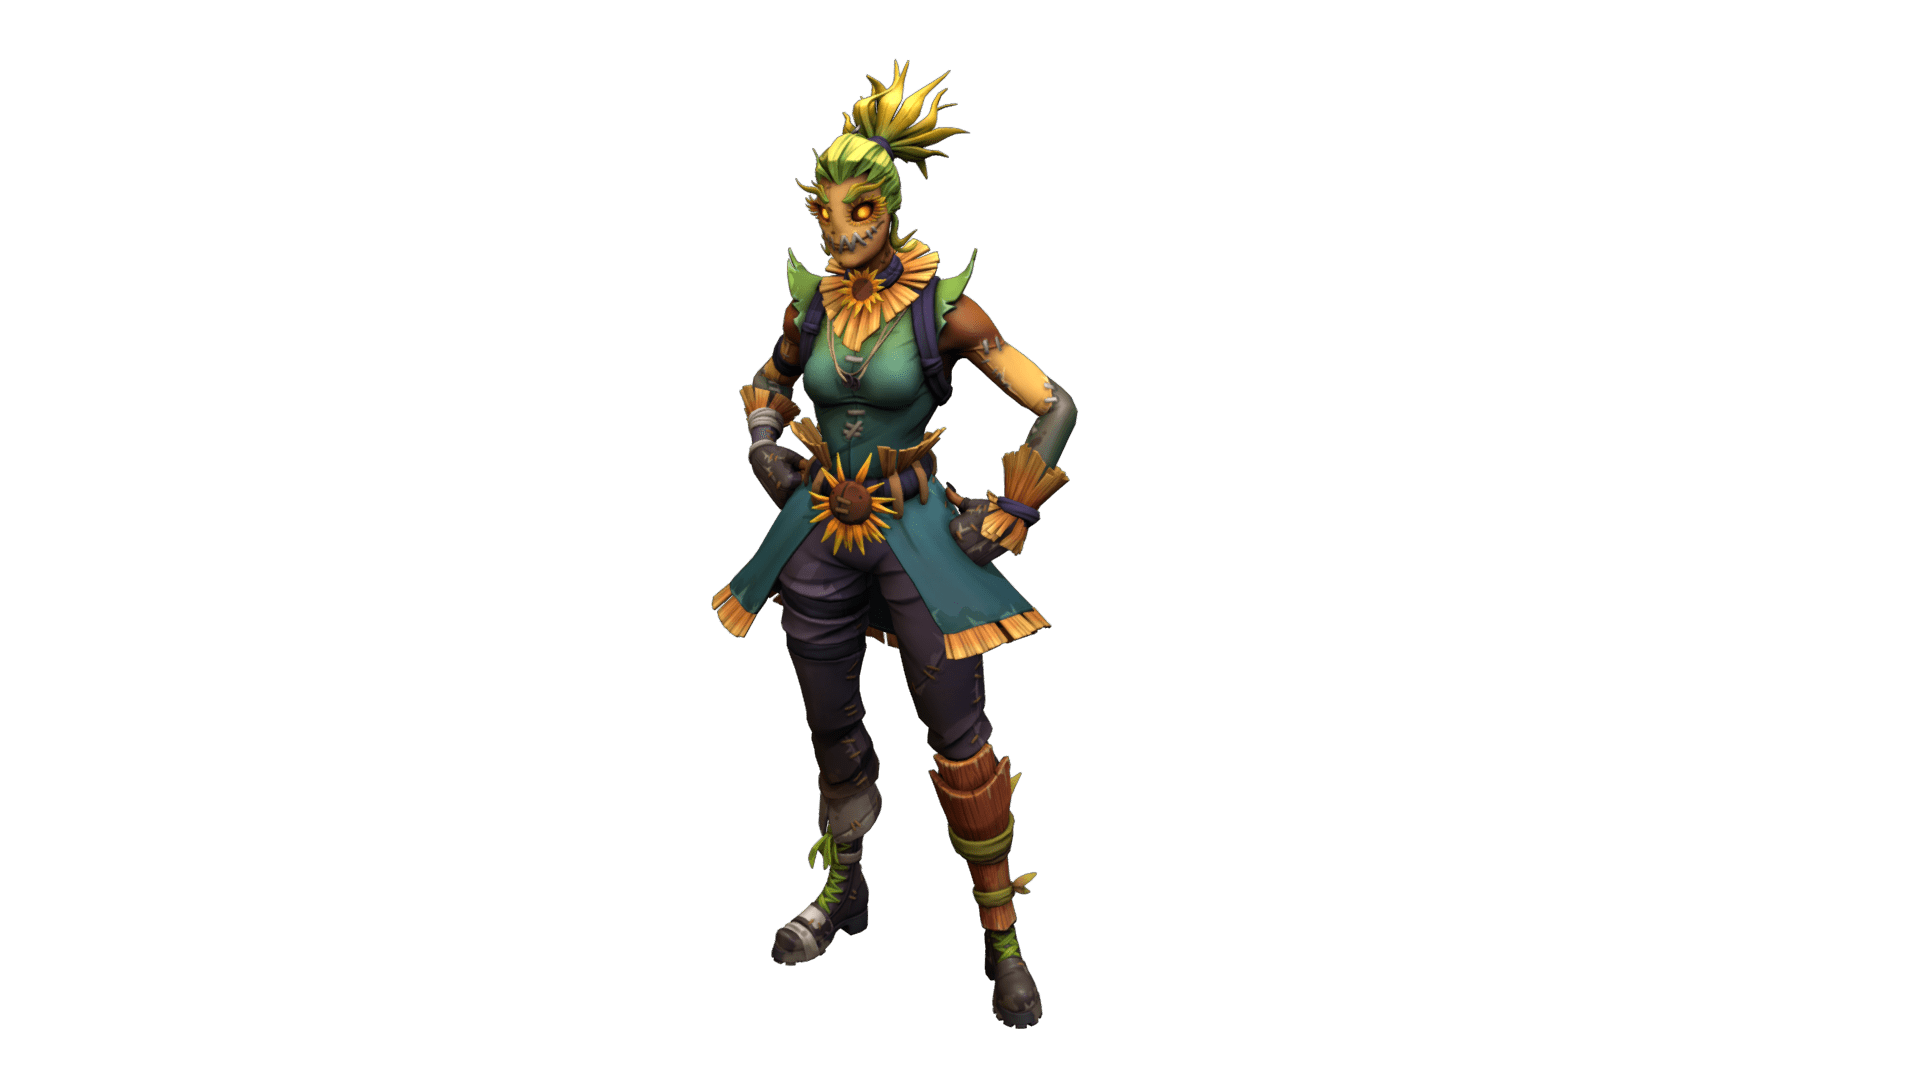 Fortnite Straw Ops | Outfits - Fortnite Skins